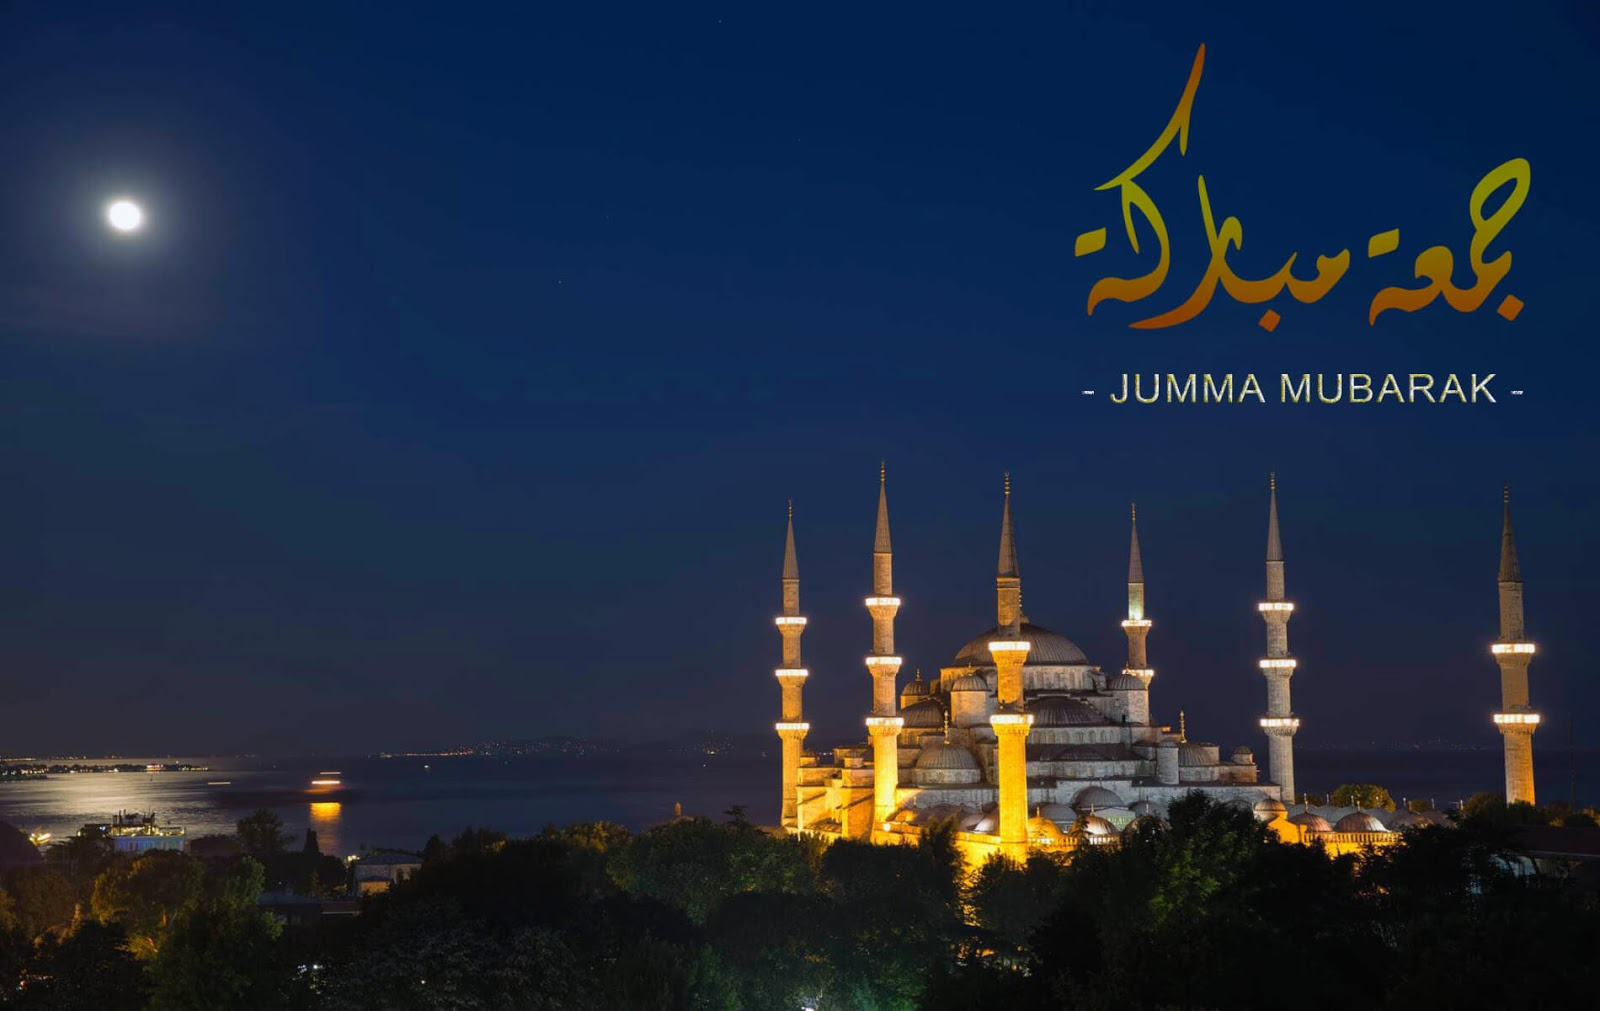 Jumma Mubarak Image for Facebook